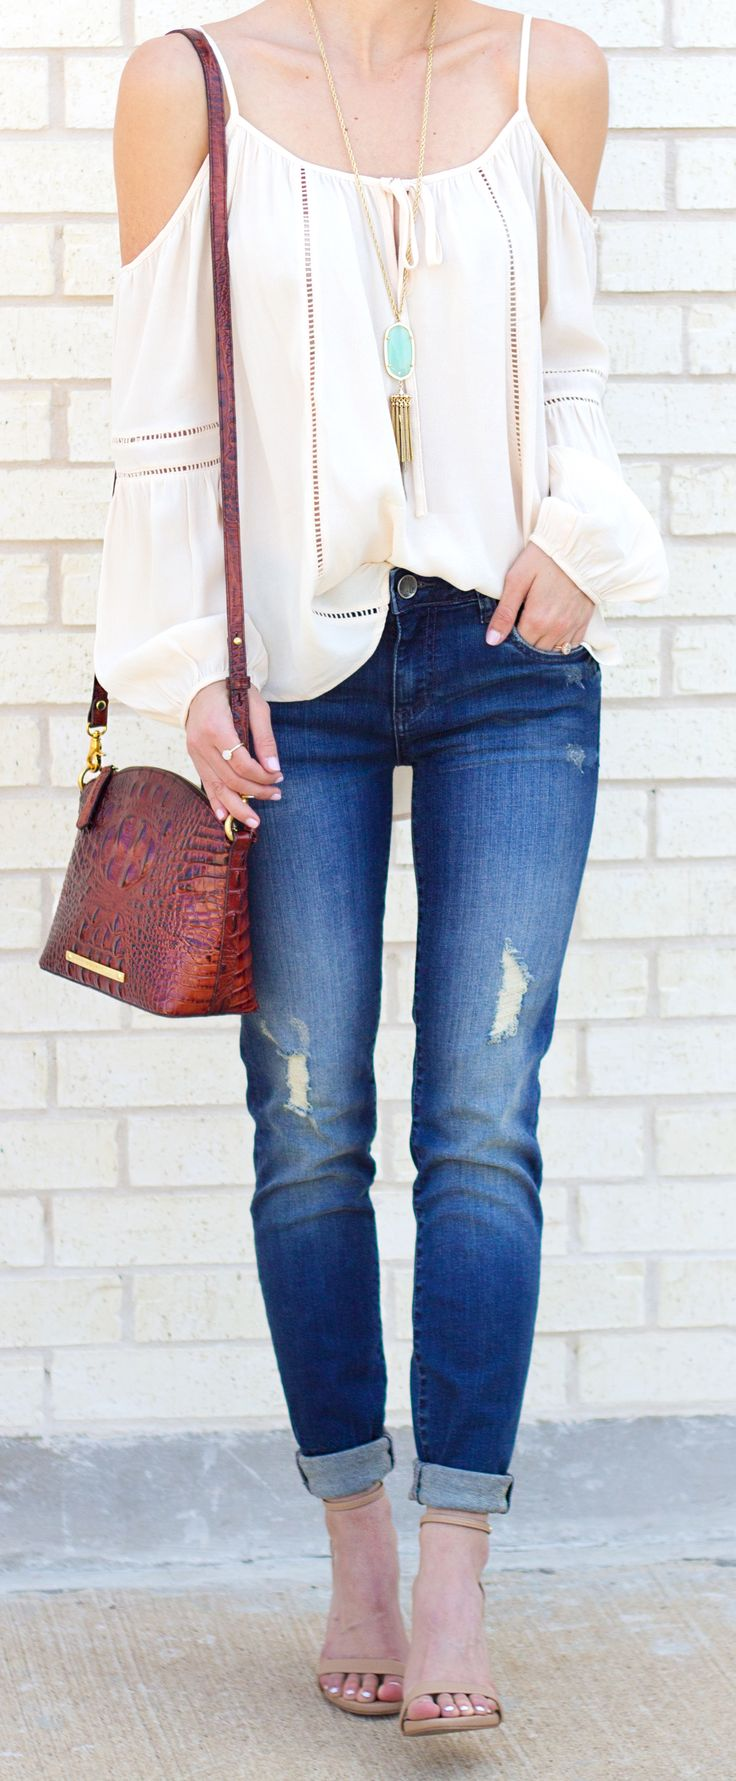 Cold shoulders are really in this spring! Style yours with cuffed jeans and heels or ballet flats.